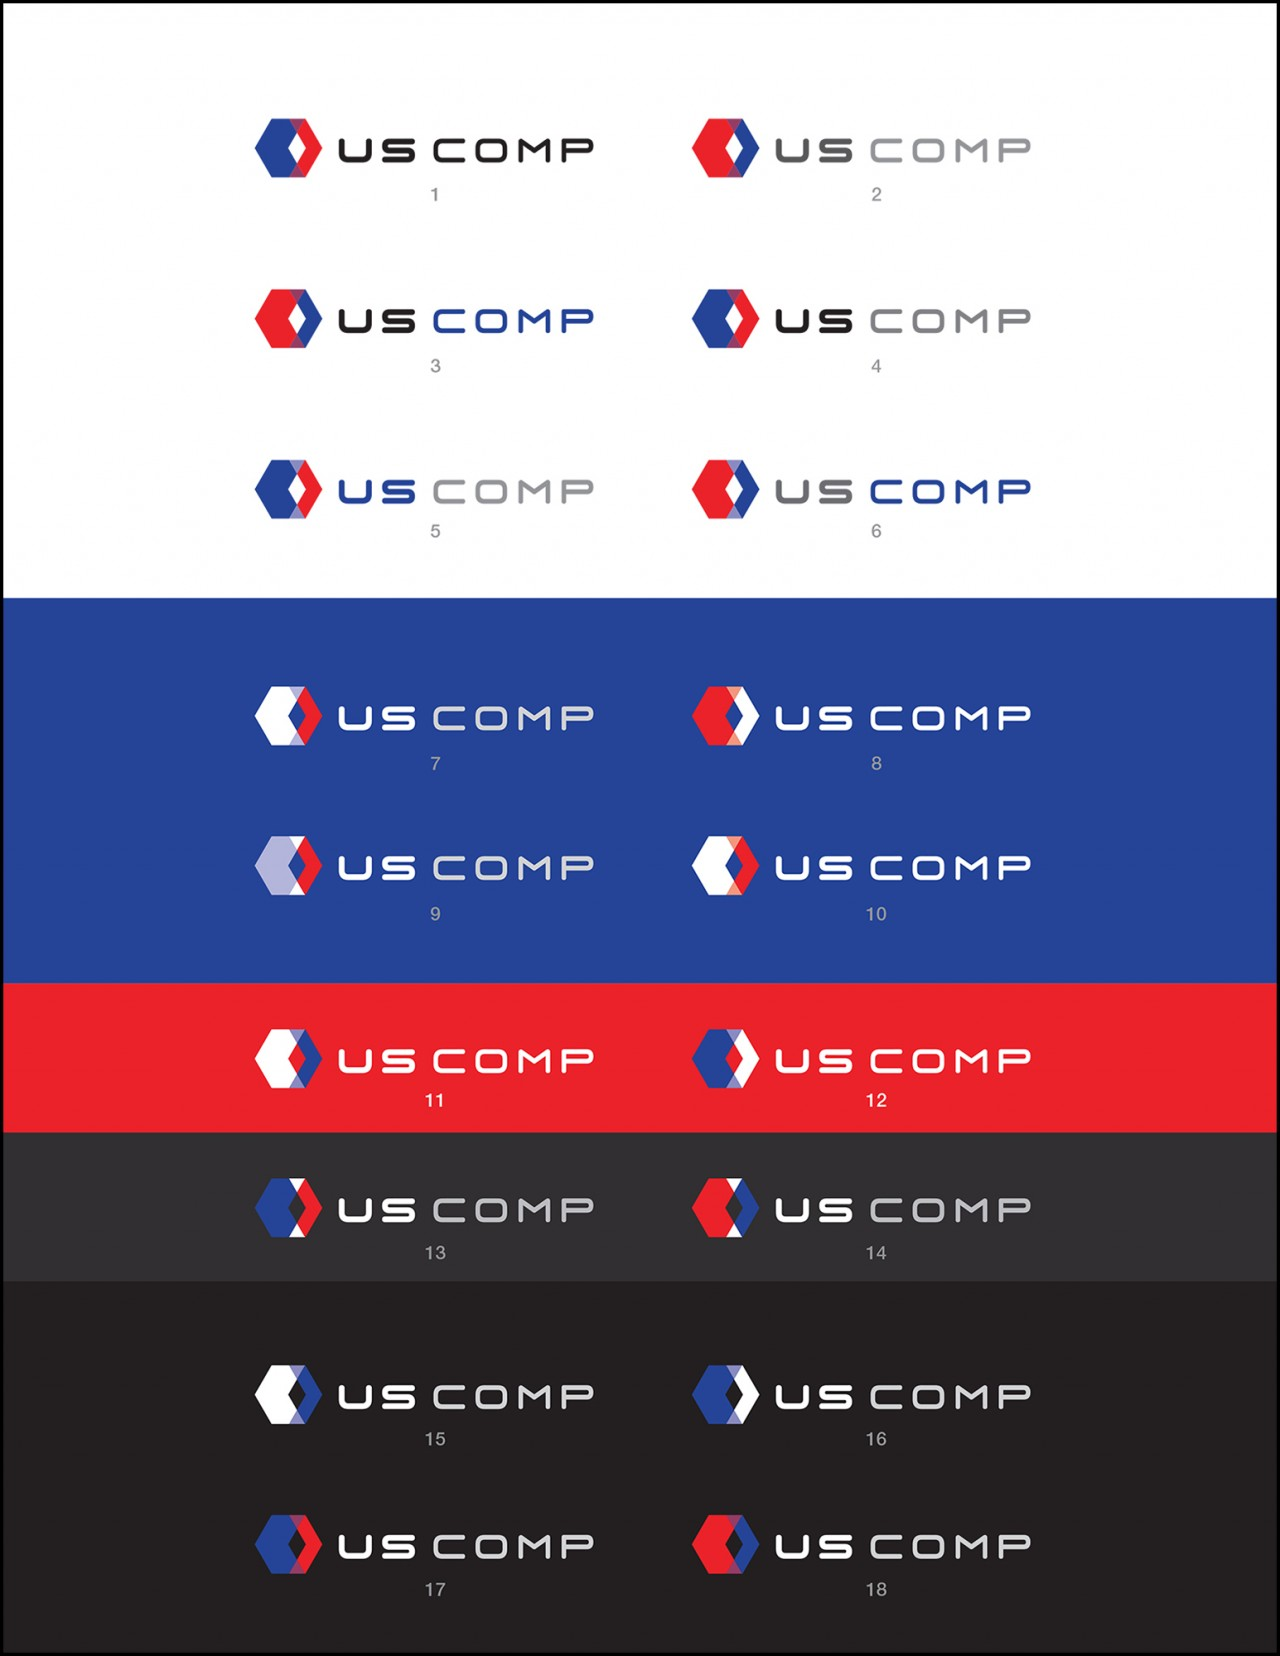 logo design color options